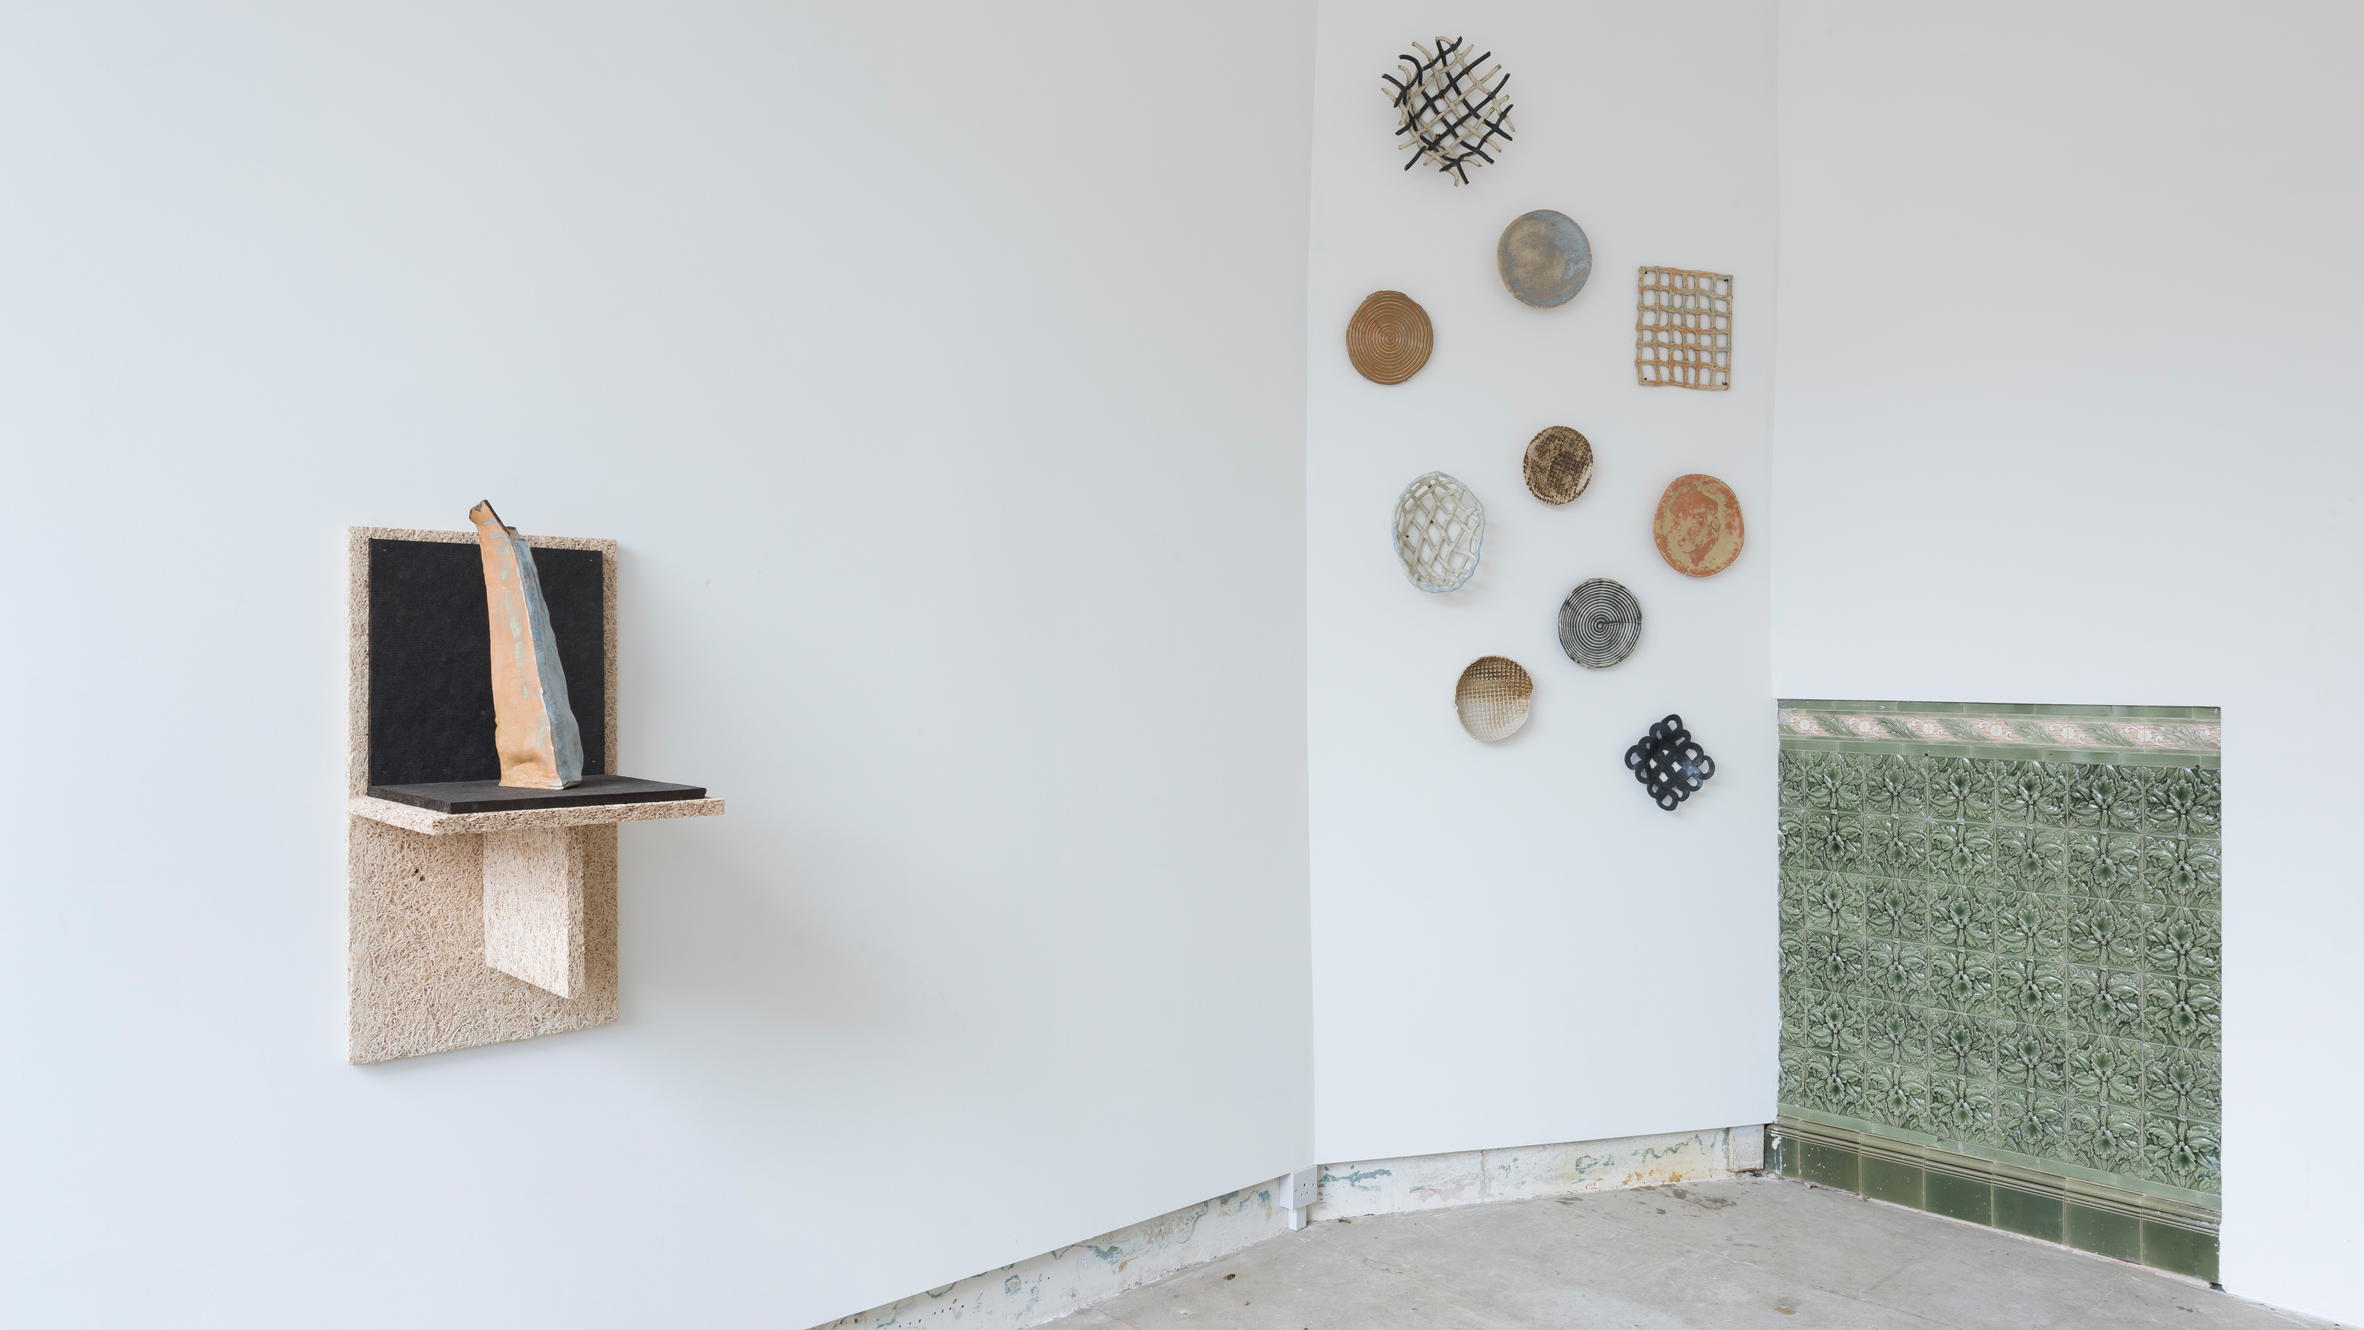 No Ordinary Love exhibition by Martino Gamper and friends Seed Gallery